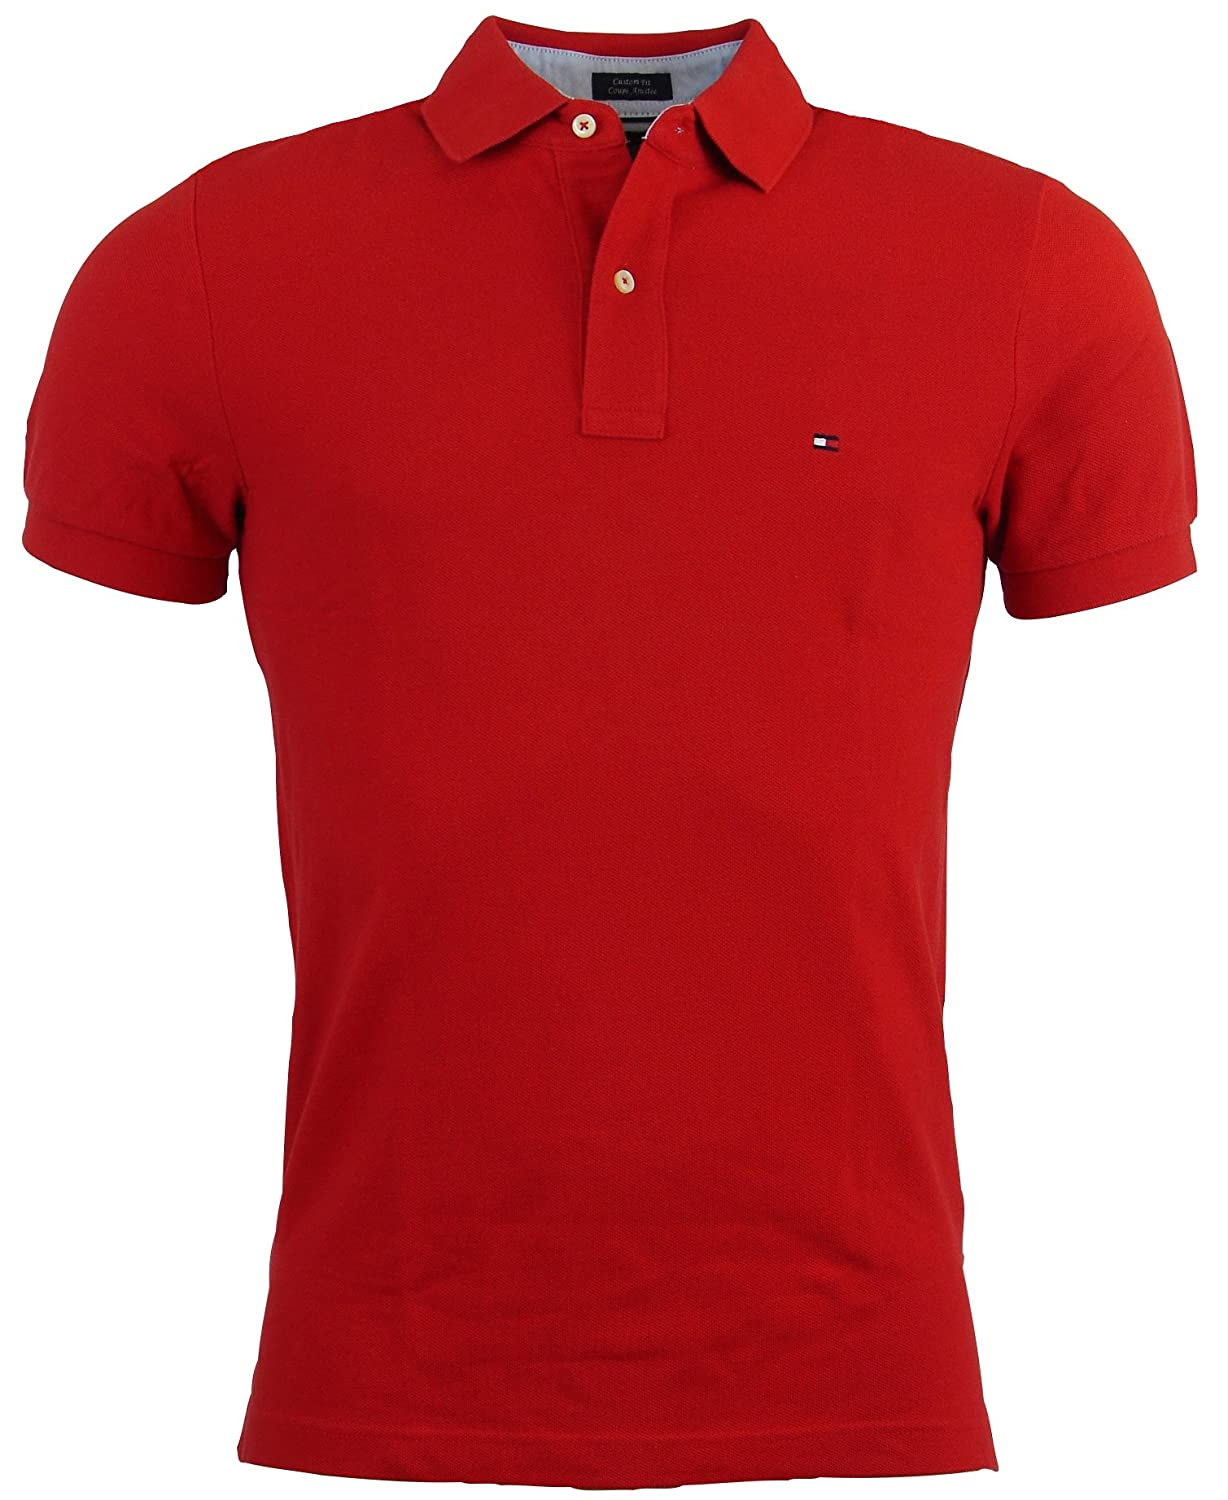 57b5a595 Tommy Hilfiger Mens Custom Fit Solid Color Polo Shirt at Amazon Men's  Clothing store: